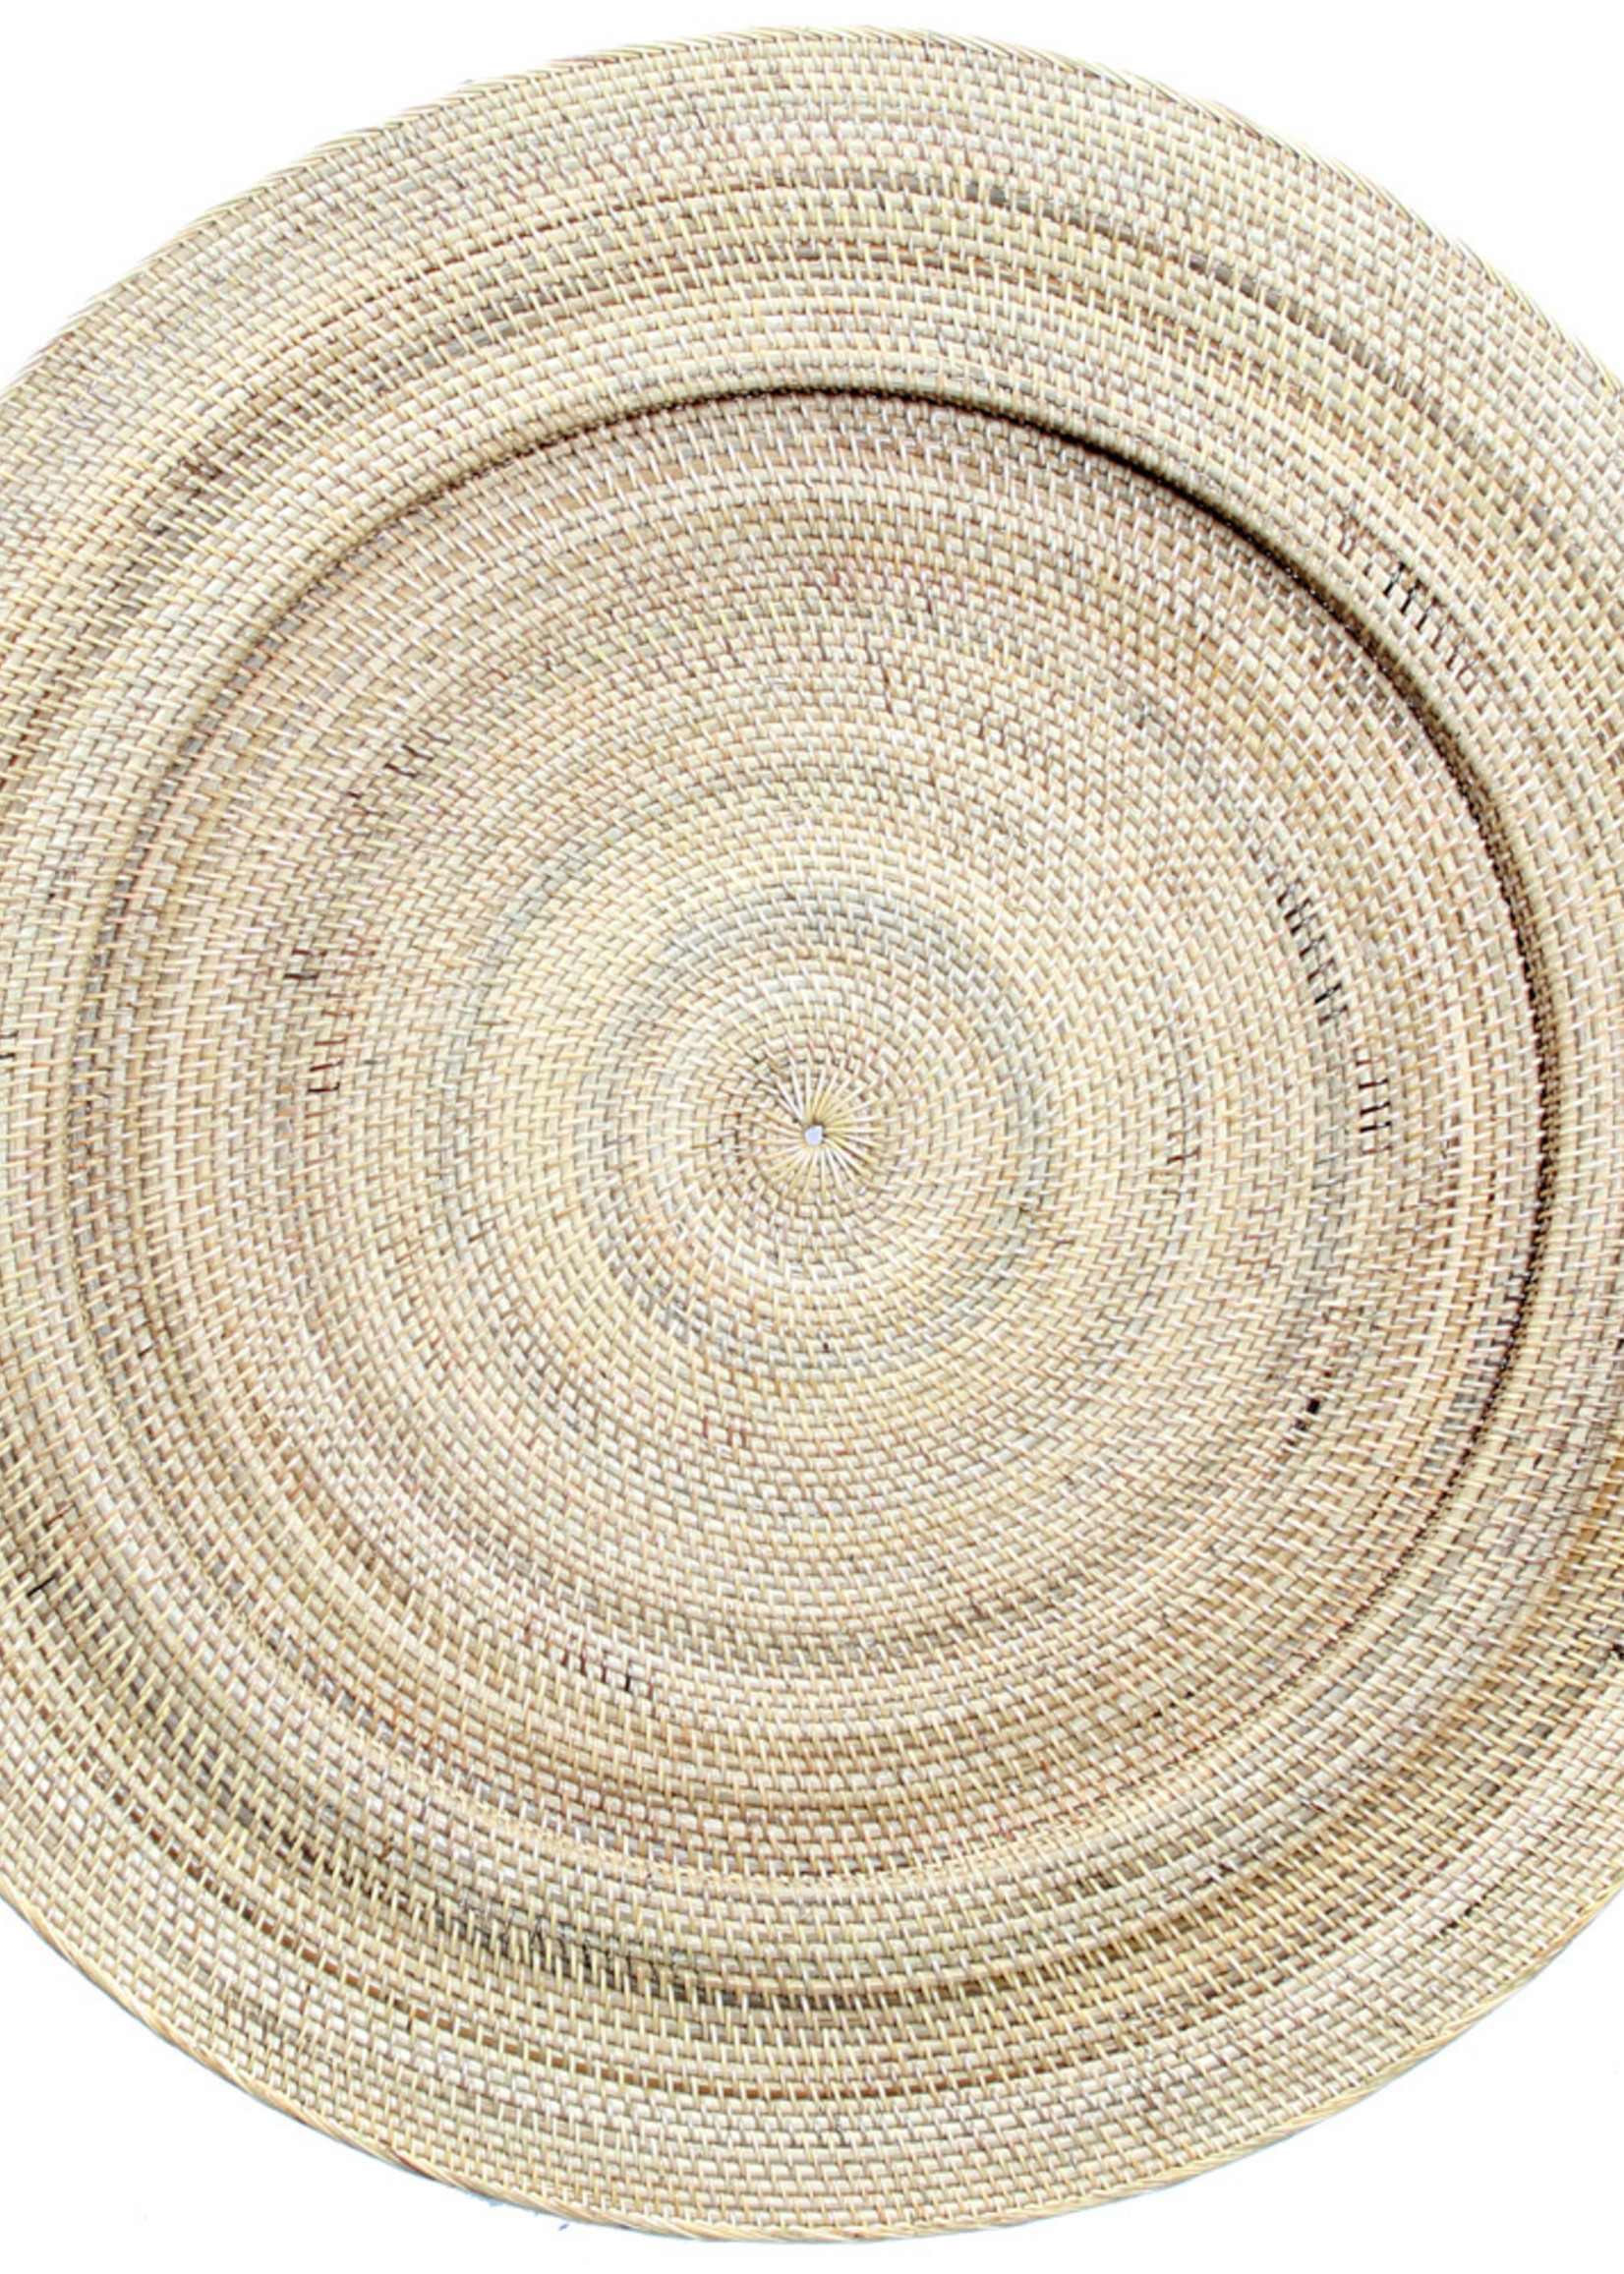 The Jasmine Plate - Natural - XL